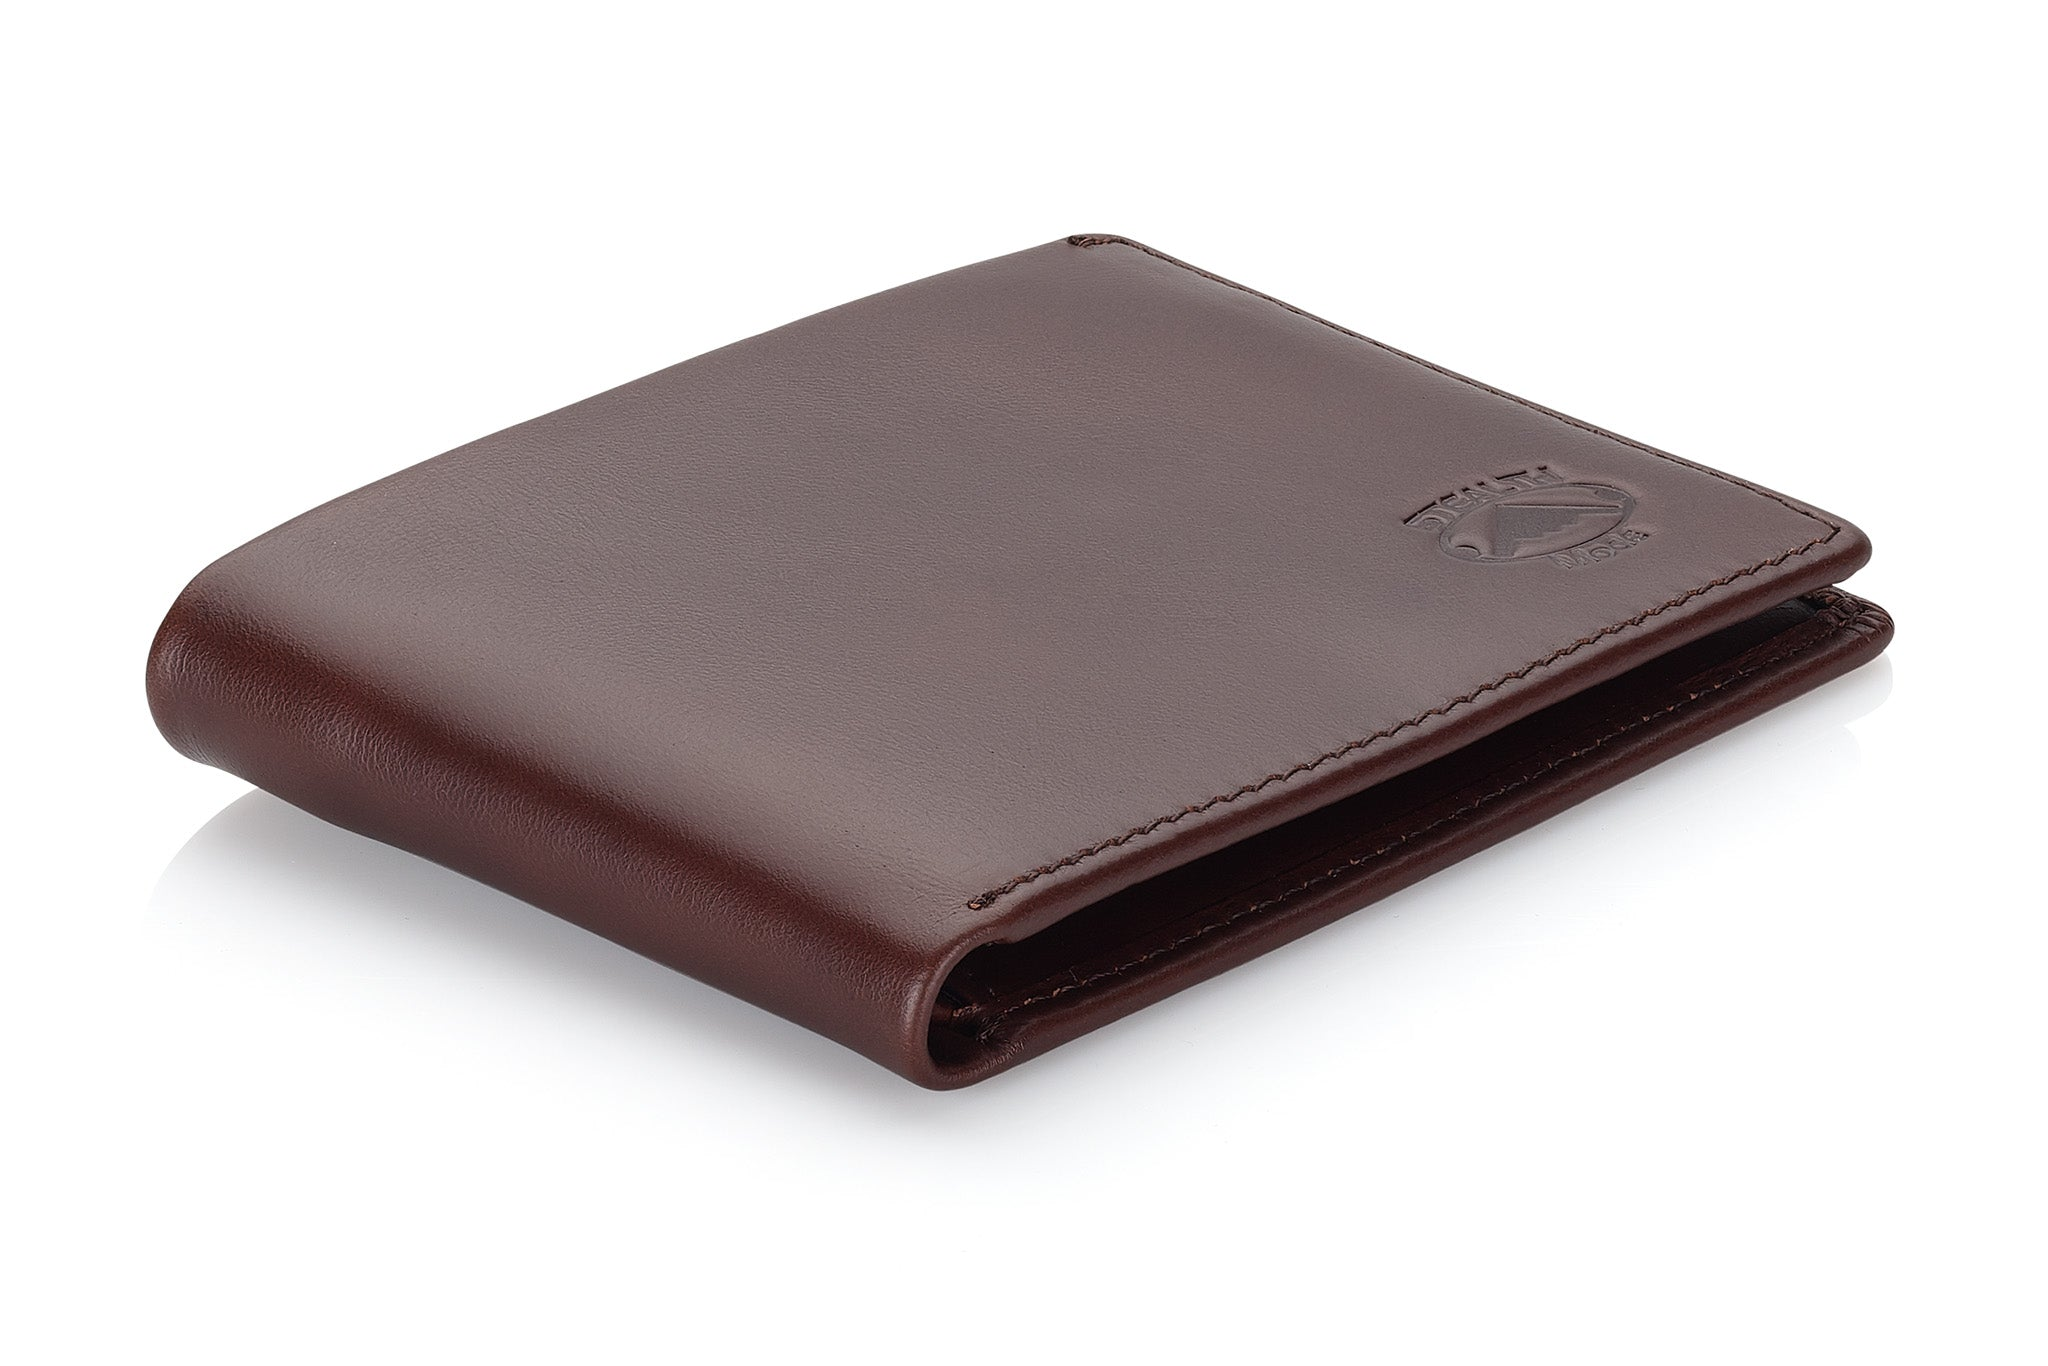 Slim Leather Bifold Wallet for Men with RFID Blocking and ID Window (Dark Brown)